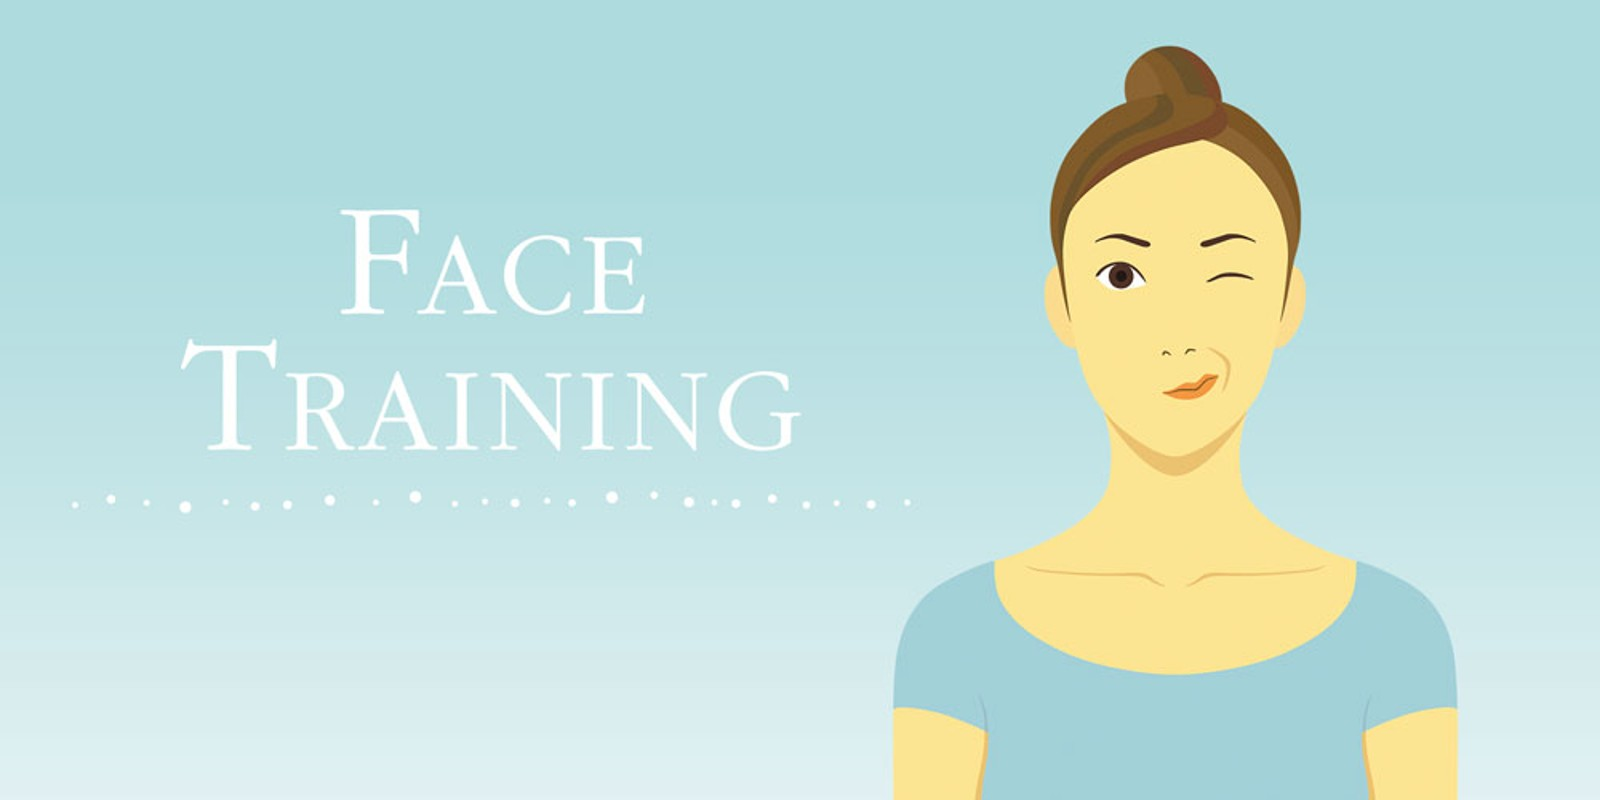 Face Training Facial exercises to strengthen and relax from Fumiko Inudo